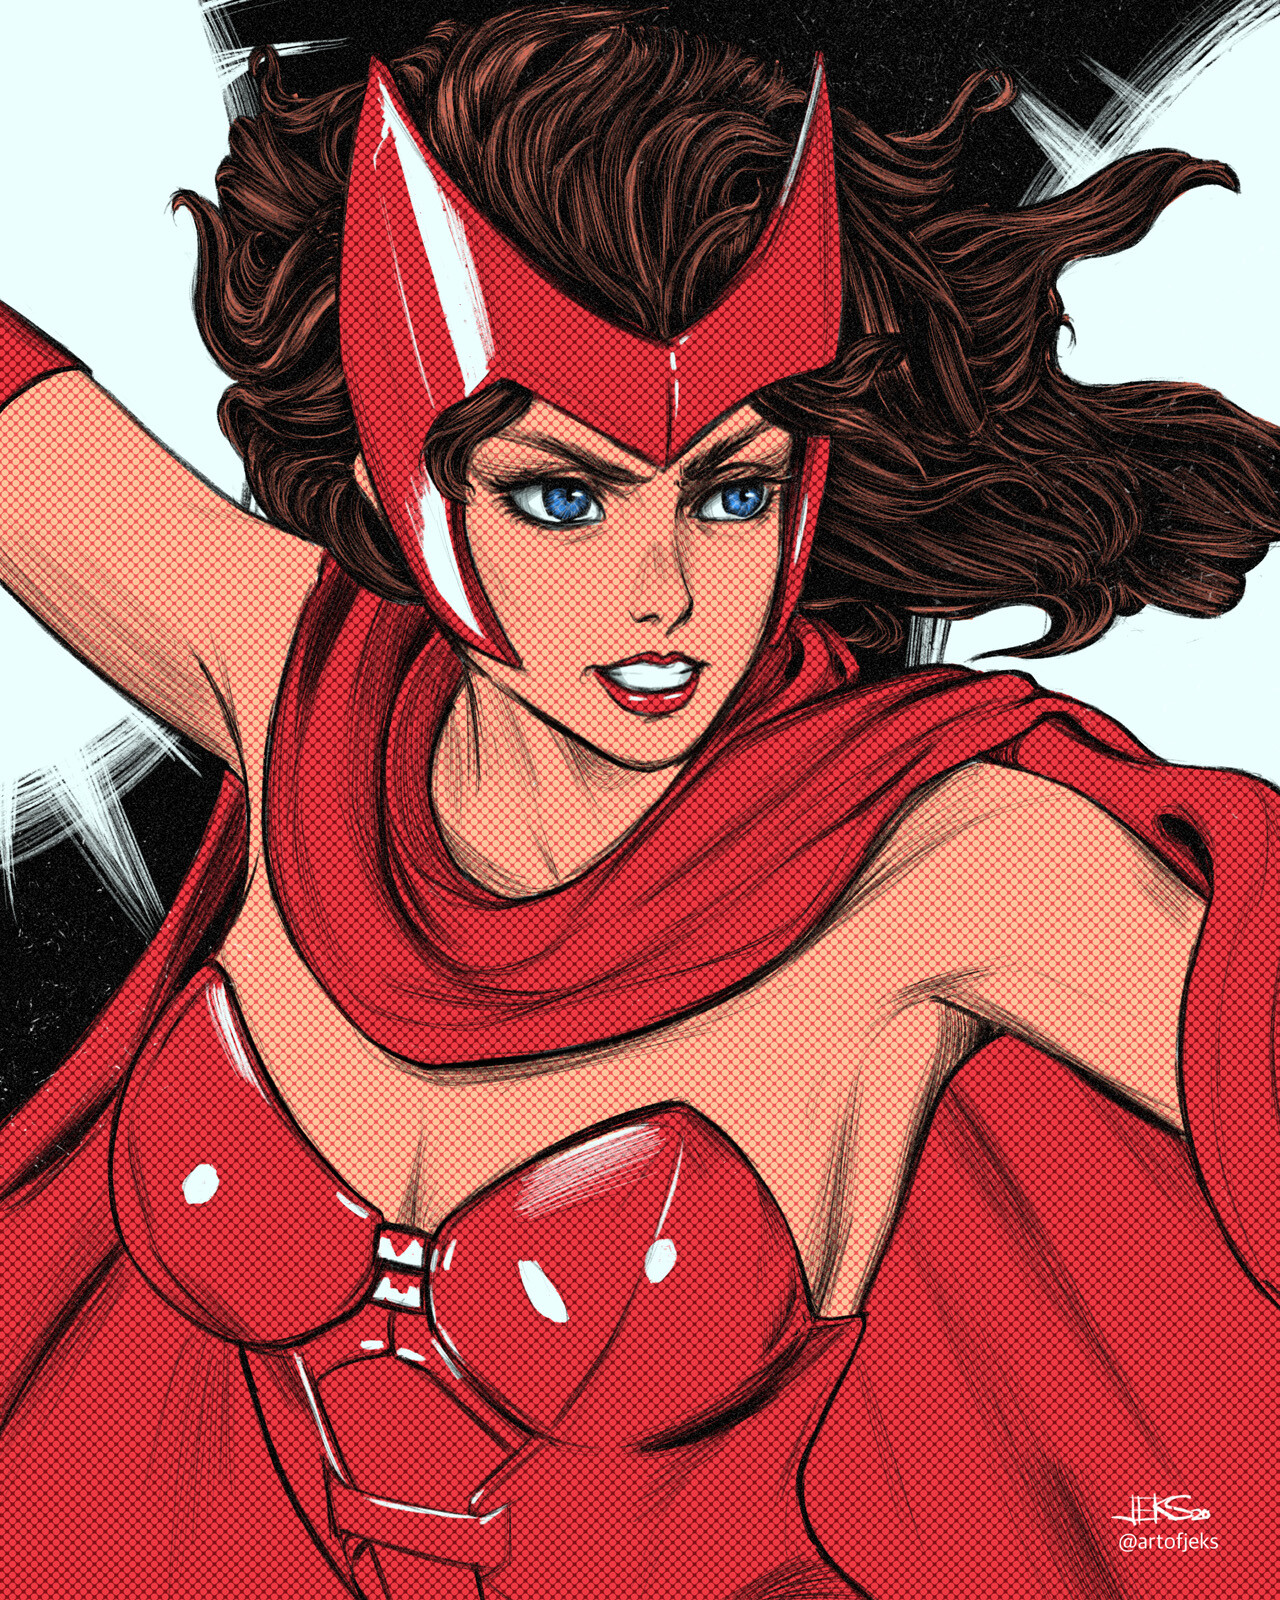 21 - Scarlet Witch of Marvel Comics